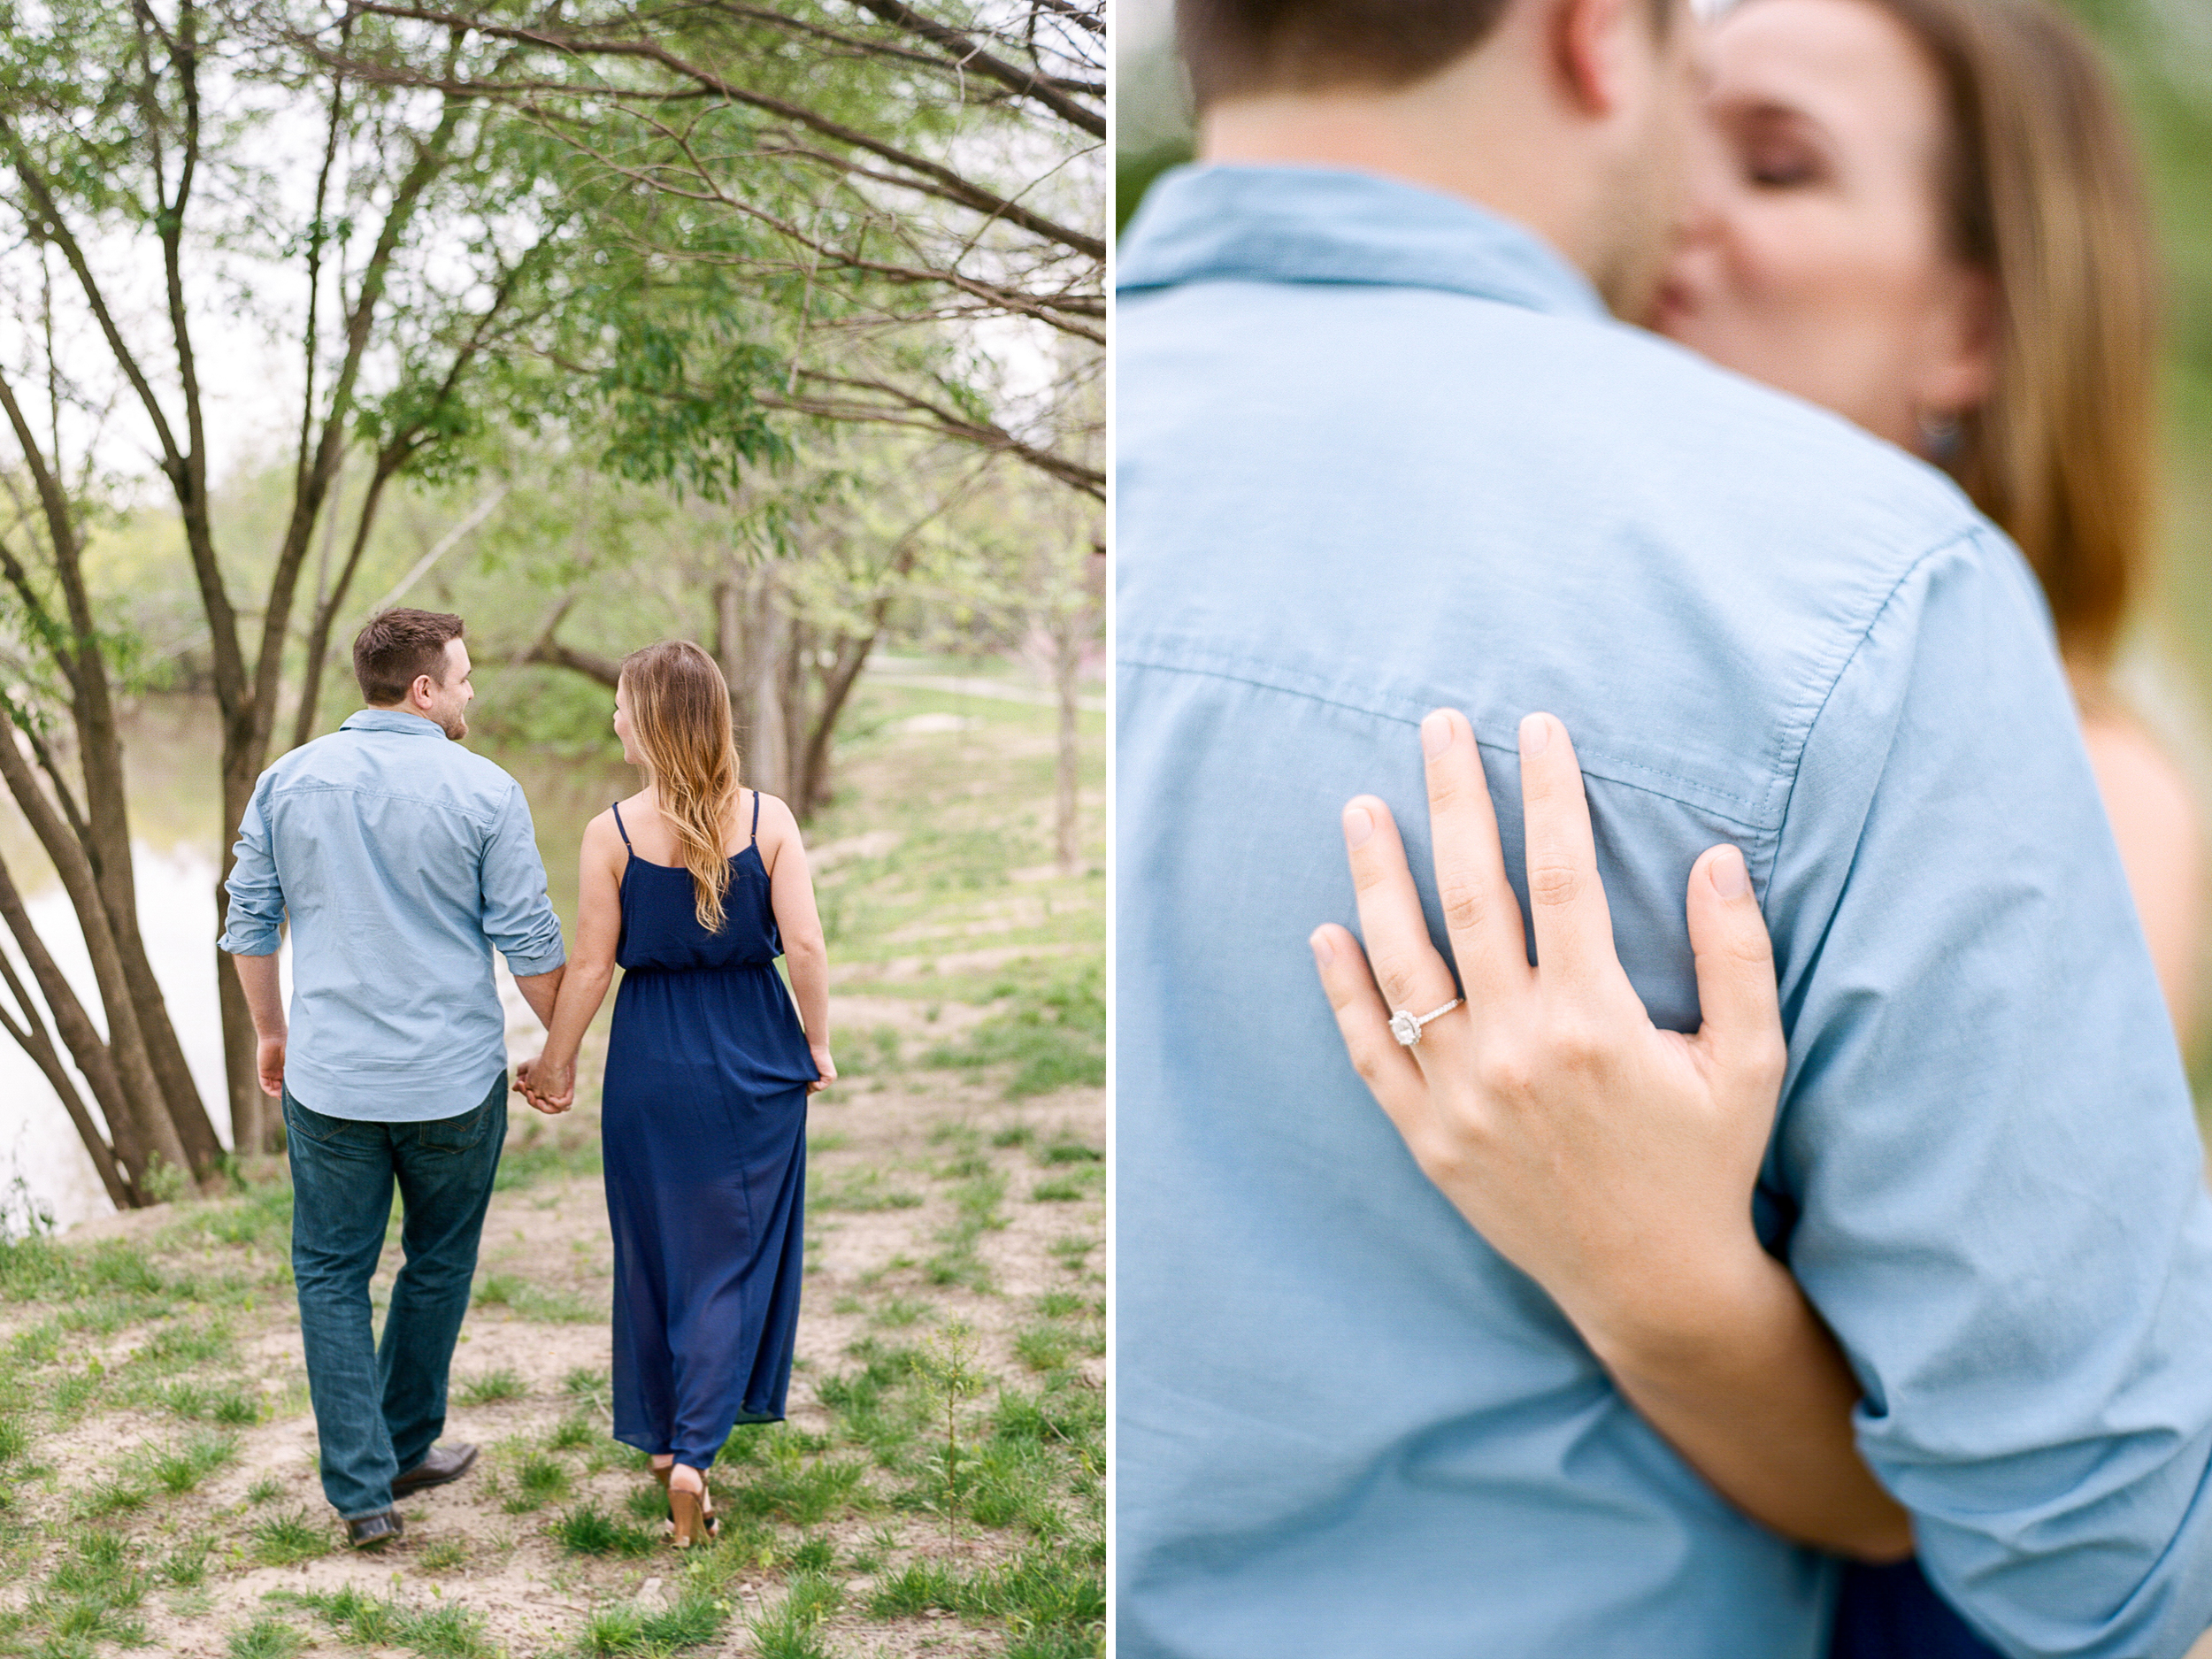 Dana-Fernandez-Photography-Houston-Wedding-Photographer-Engagements-Film-Destination-Texas-2.jpg